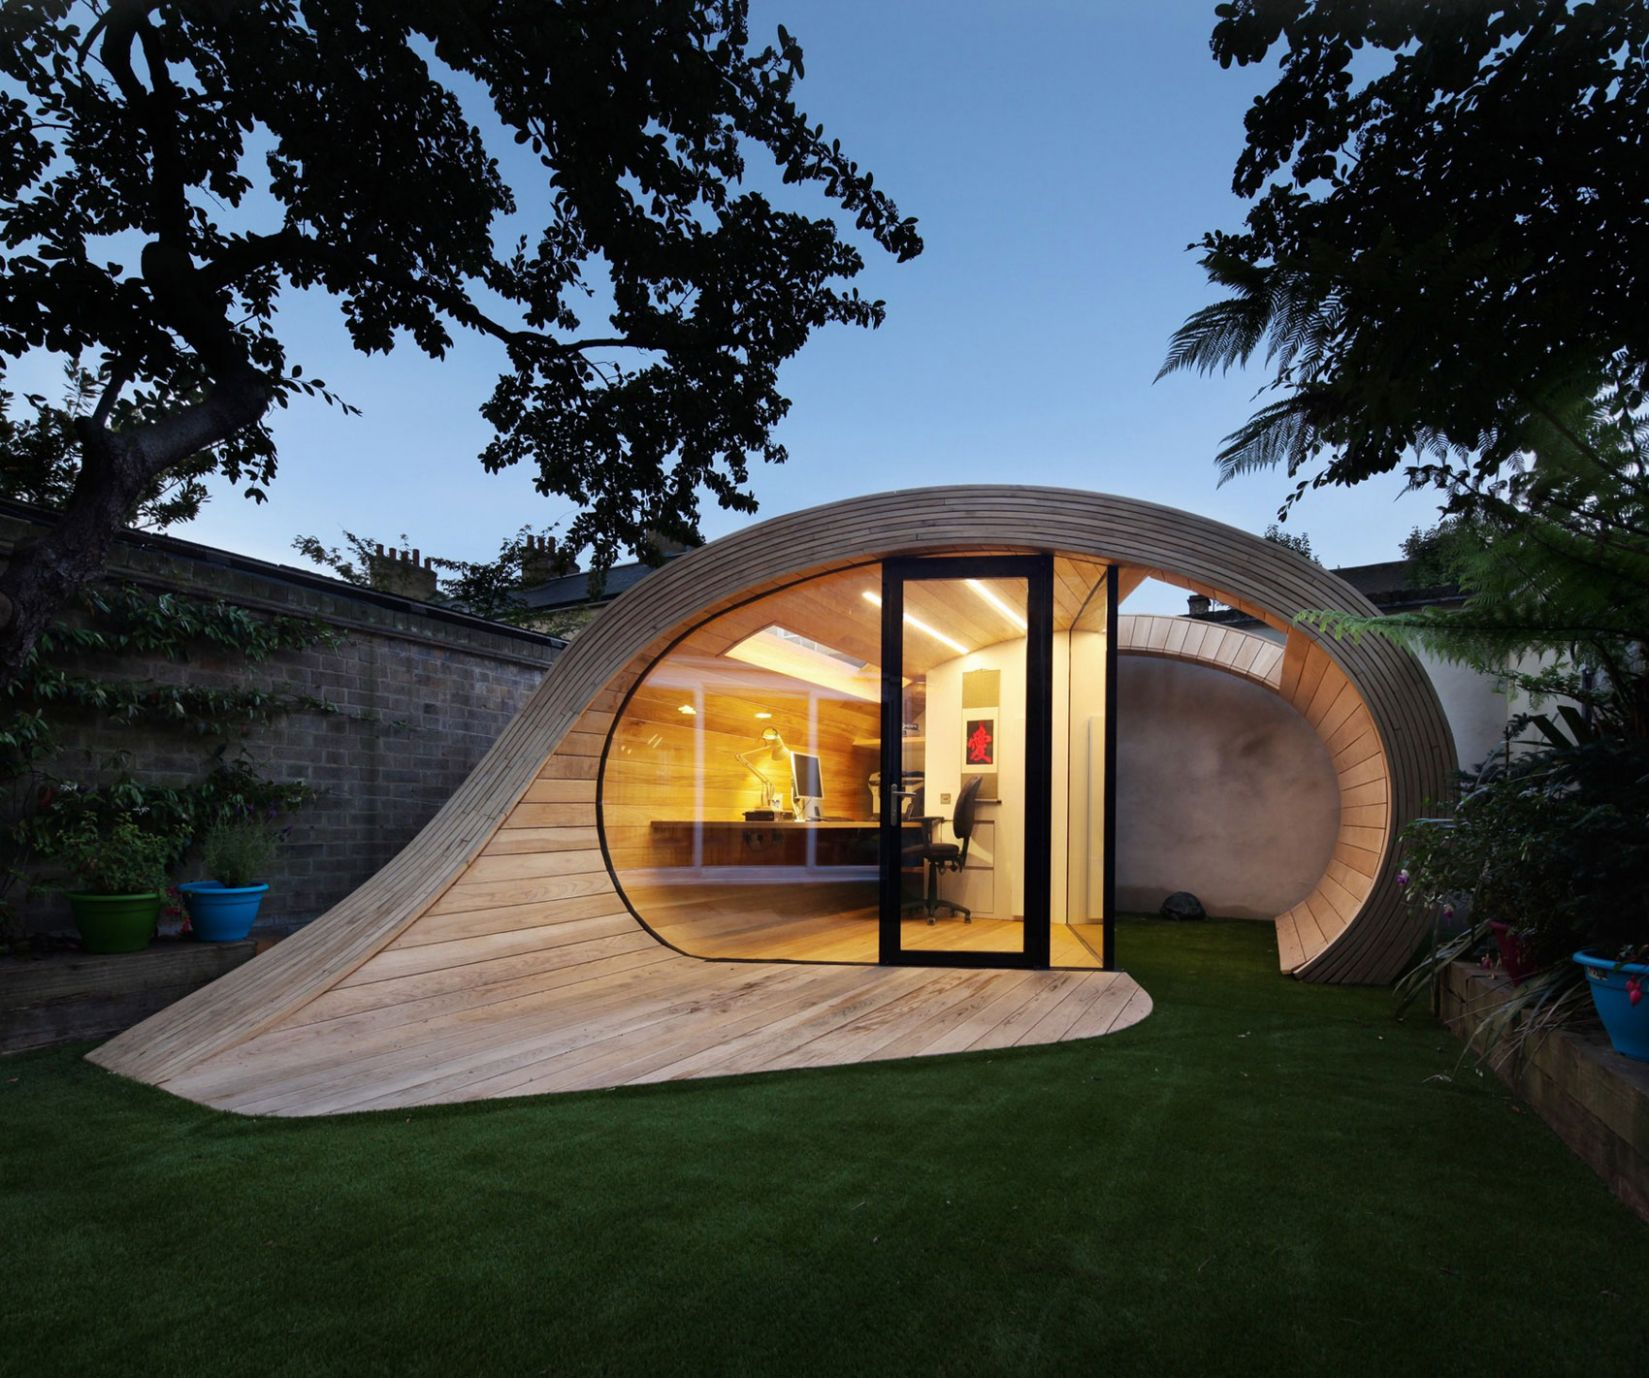 12 great summerhouse ideas to inspire you - A Room in the Garden - house and garden inspiration